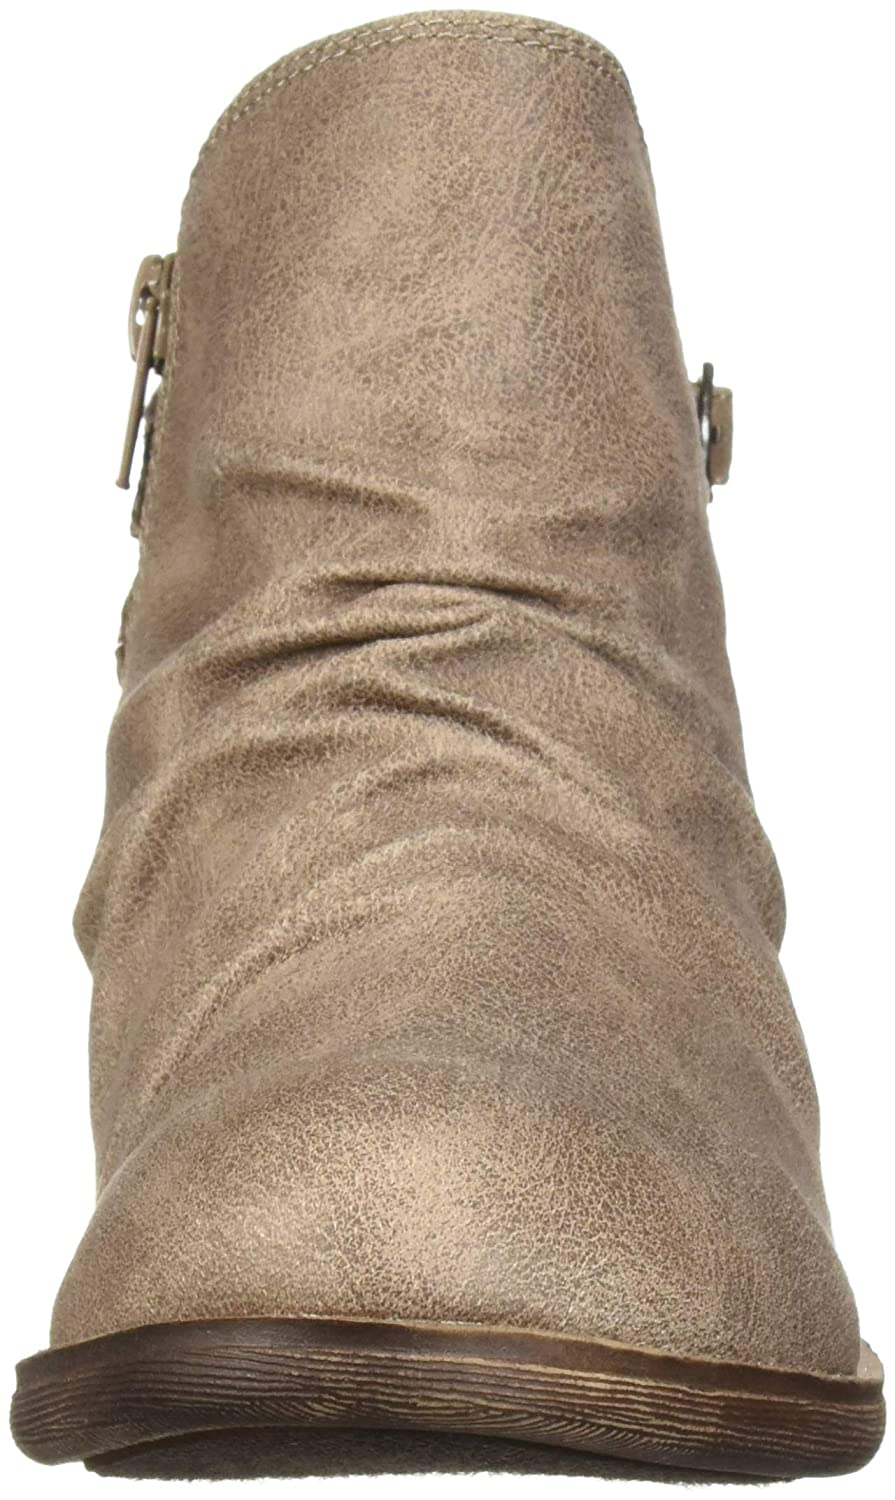 Sugar Tali Womens Casual Trendy Low Heel Scrunch Ankle Bootie with Back Strap Details Boot